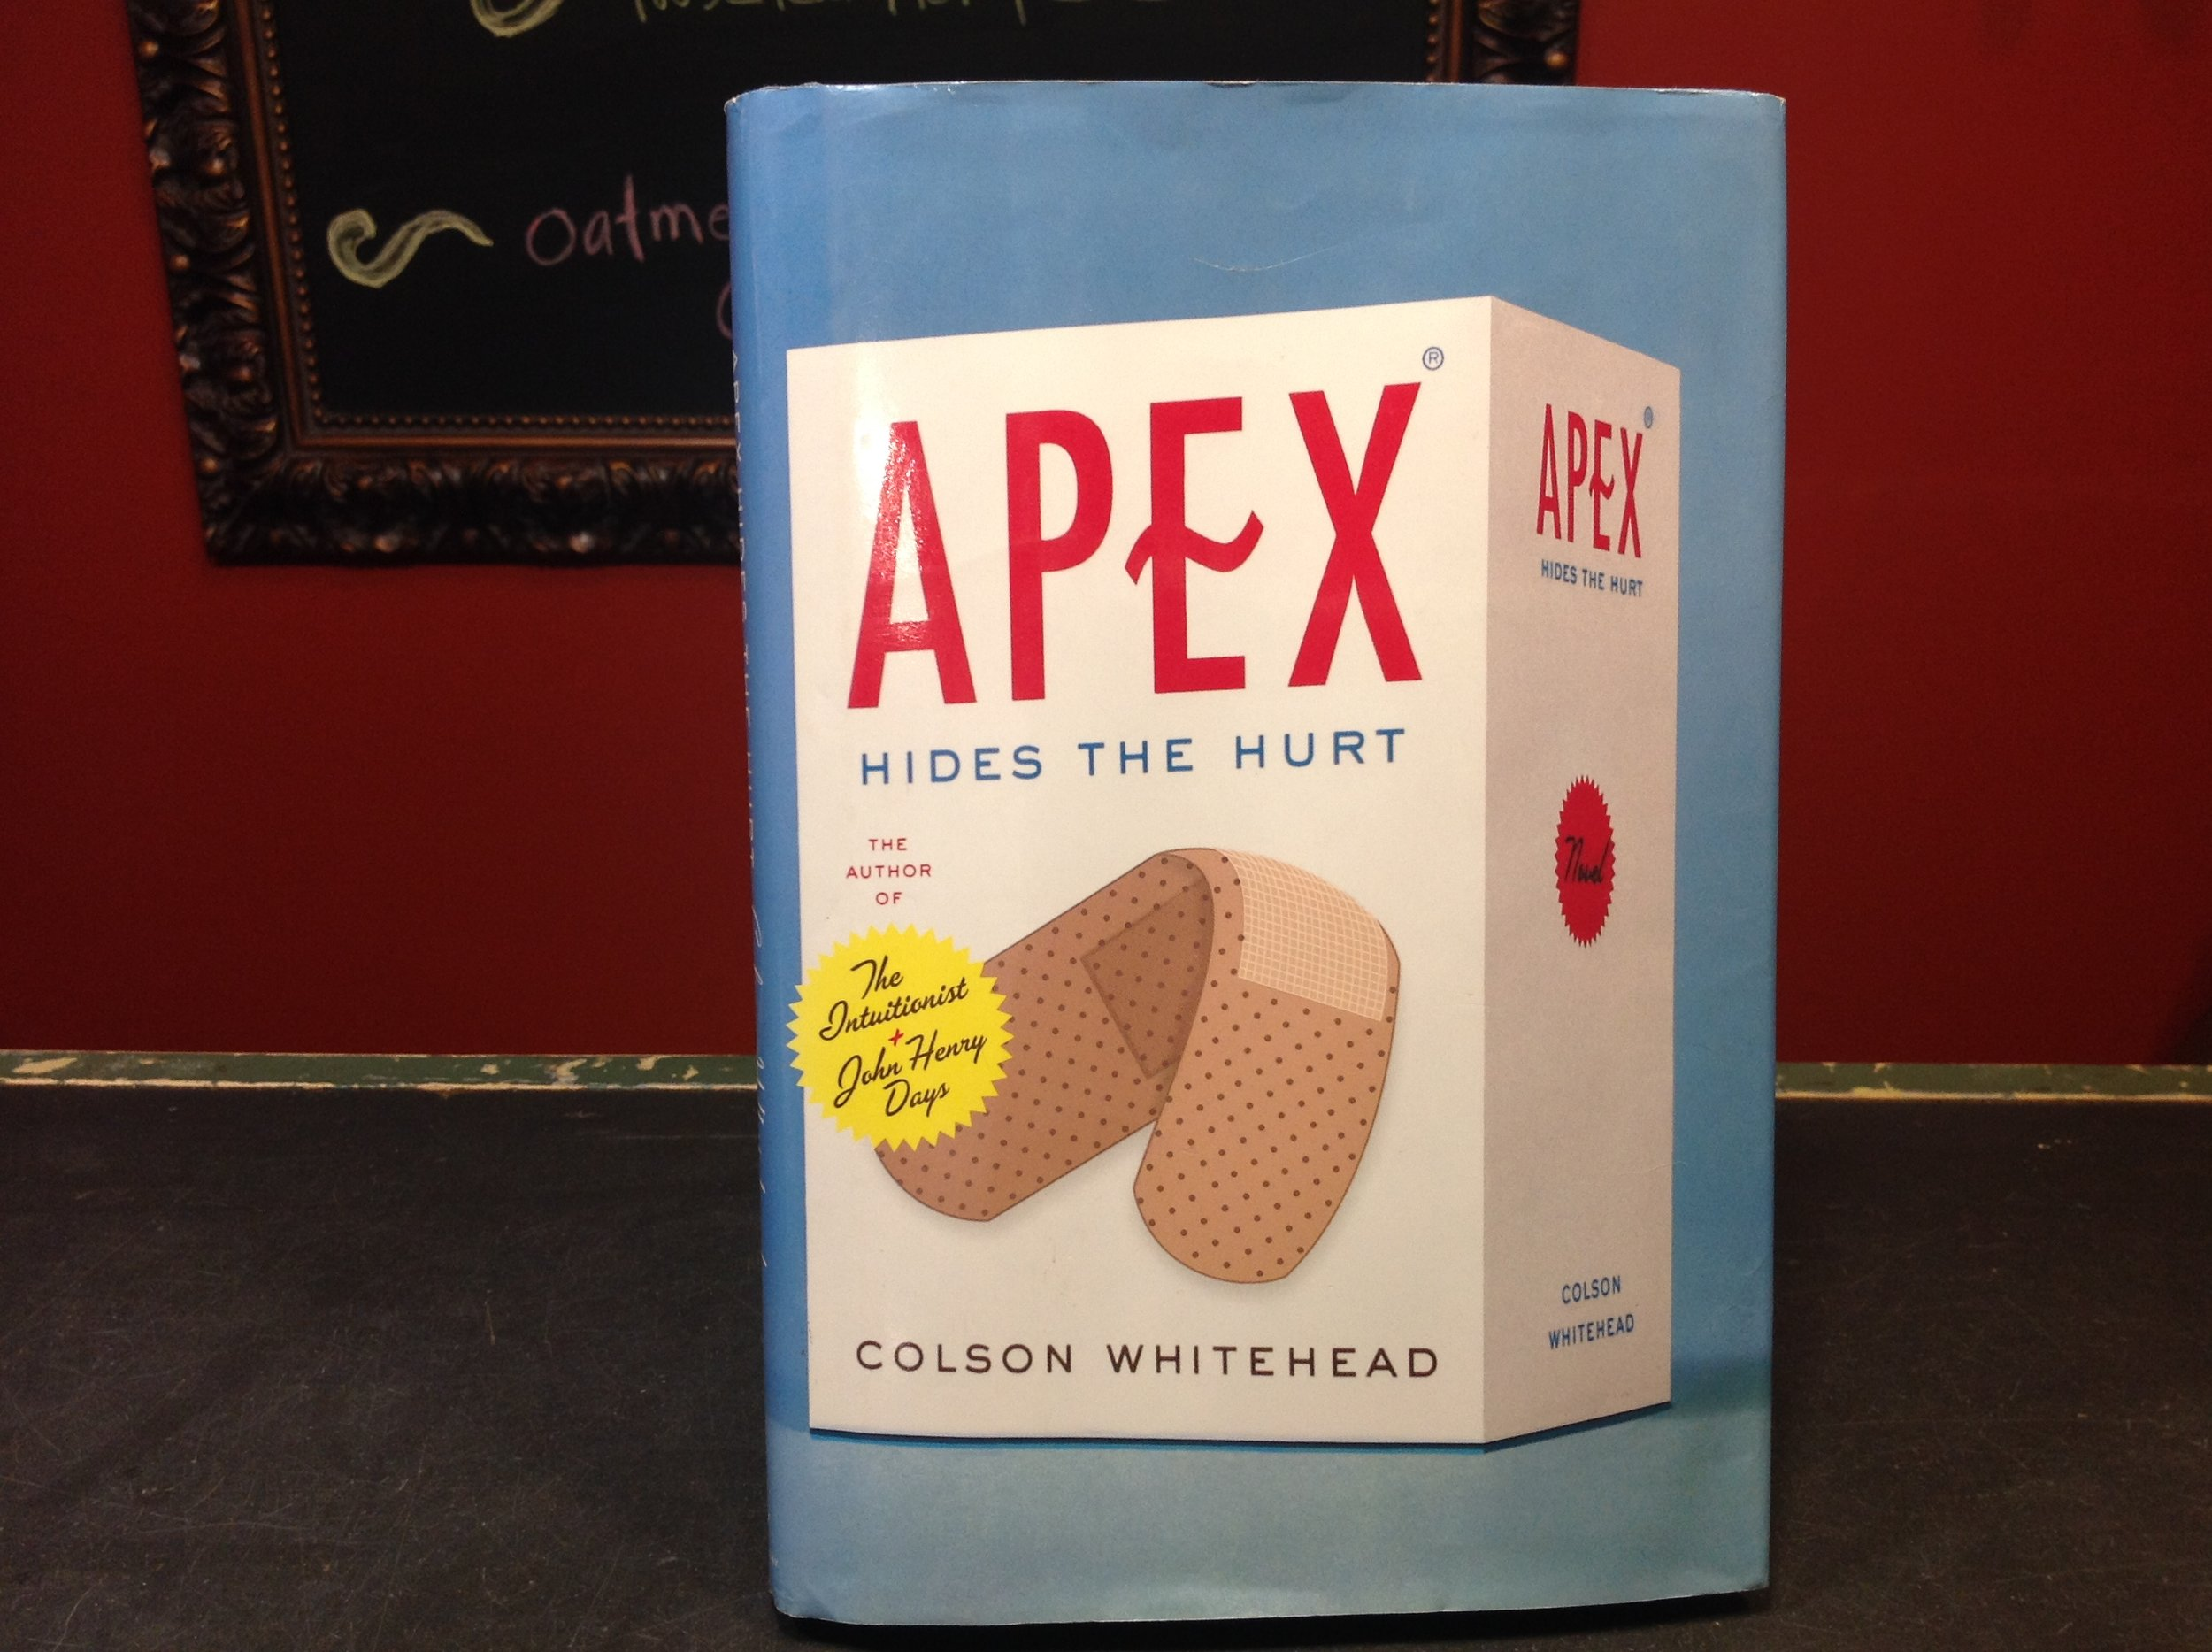 Apex Hides the Hurt by Colson Whitehead - 2006 First Edition, Doubleday, by National Book Award-winner Whitehead.